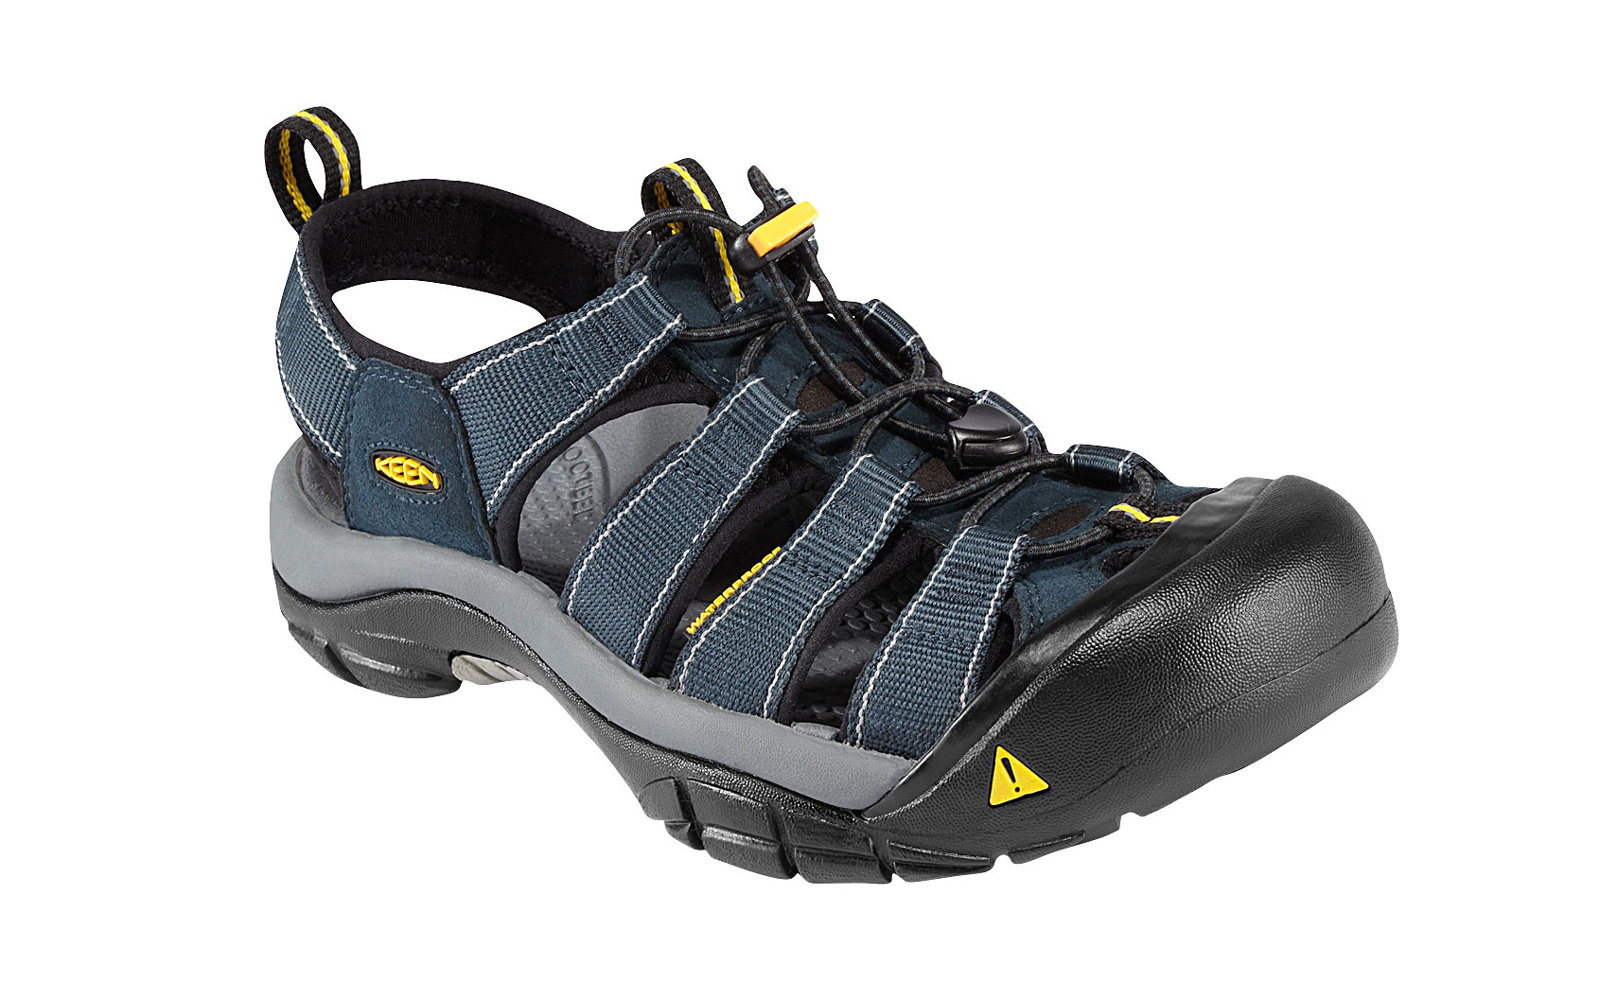 72c70d2cc The Best Hiking Sandals for Men